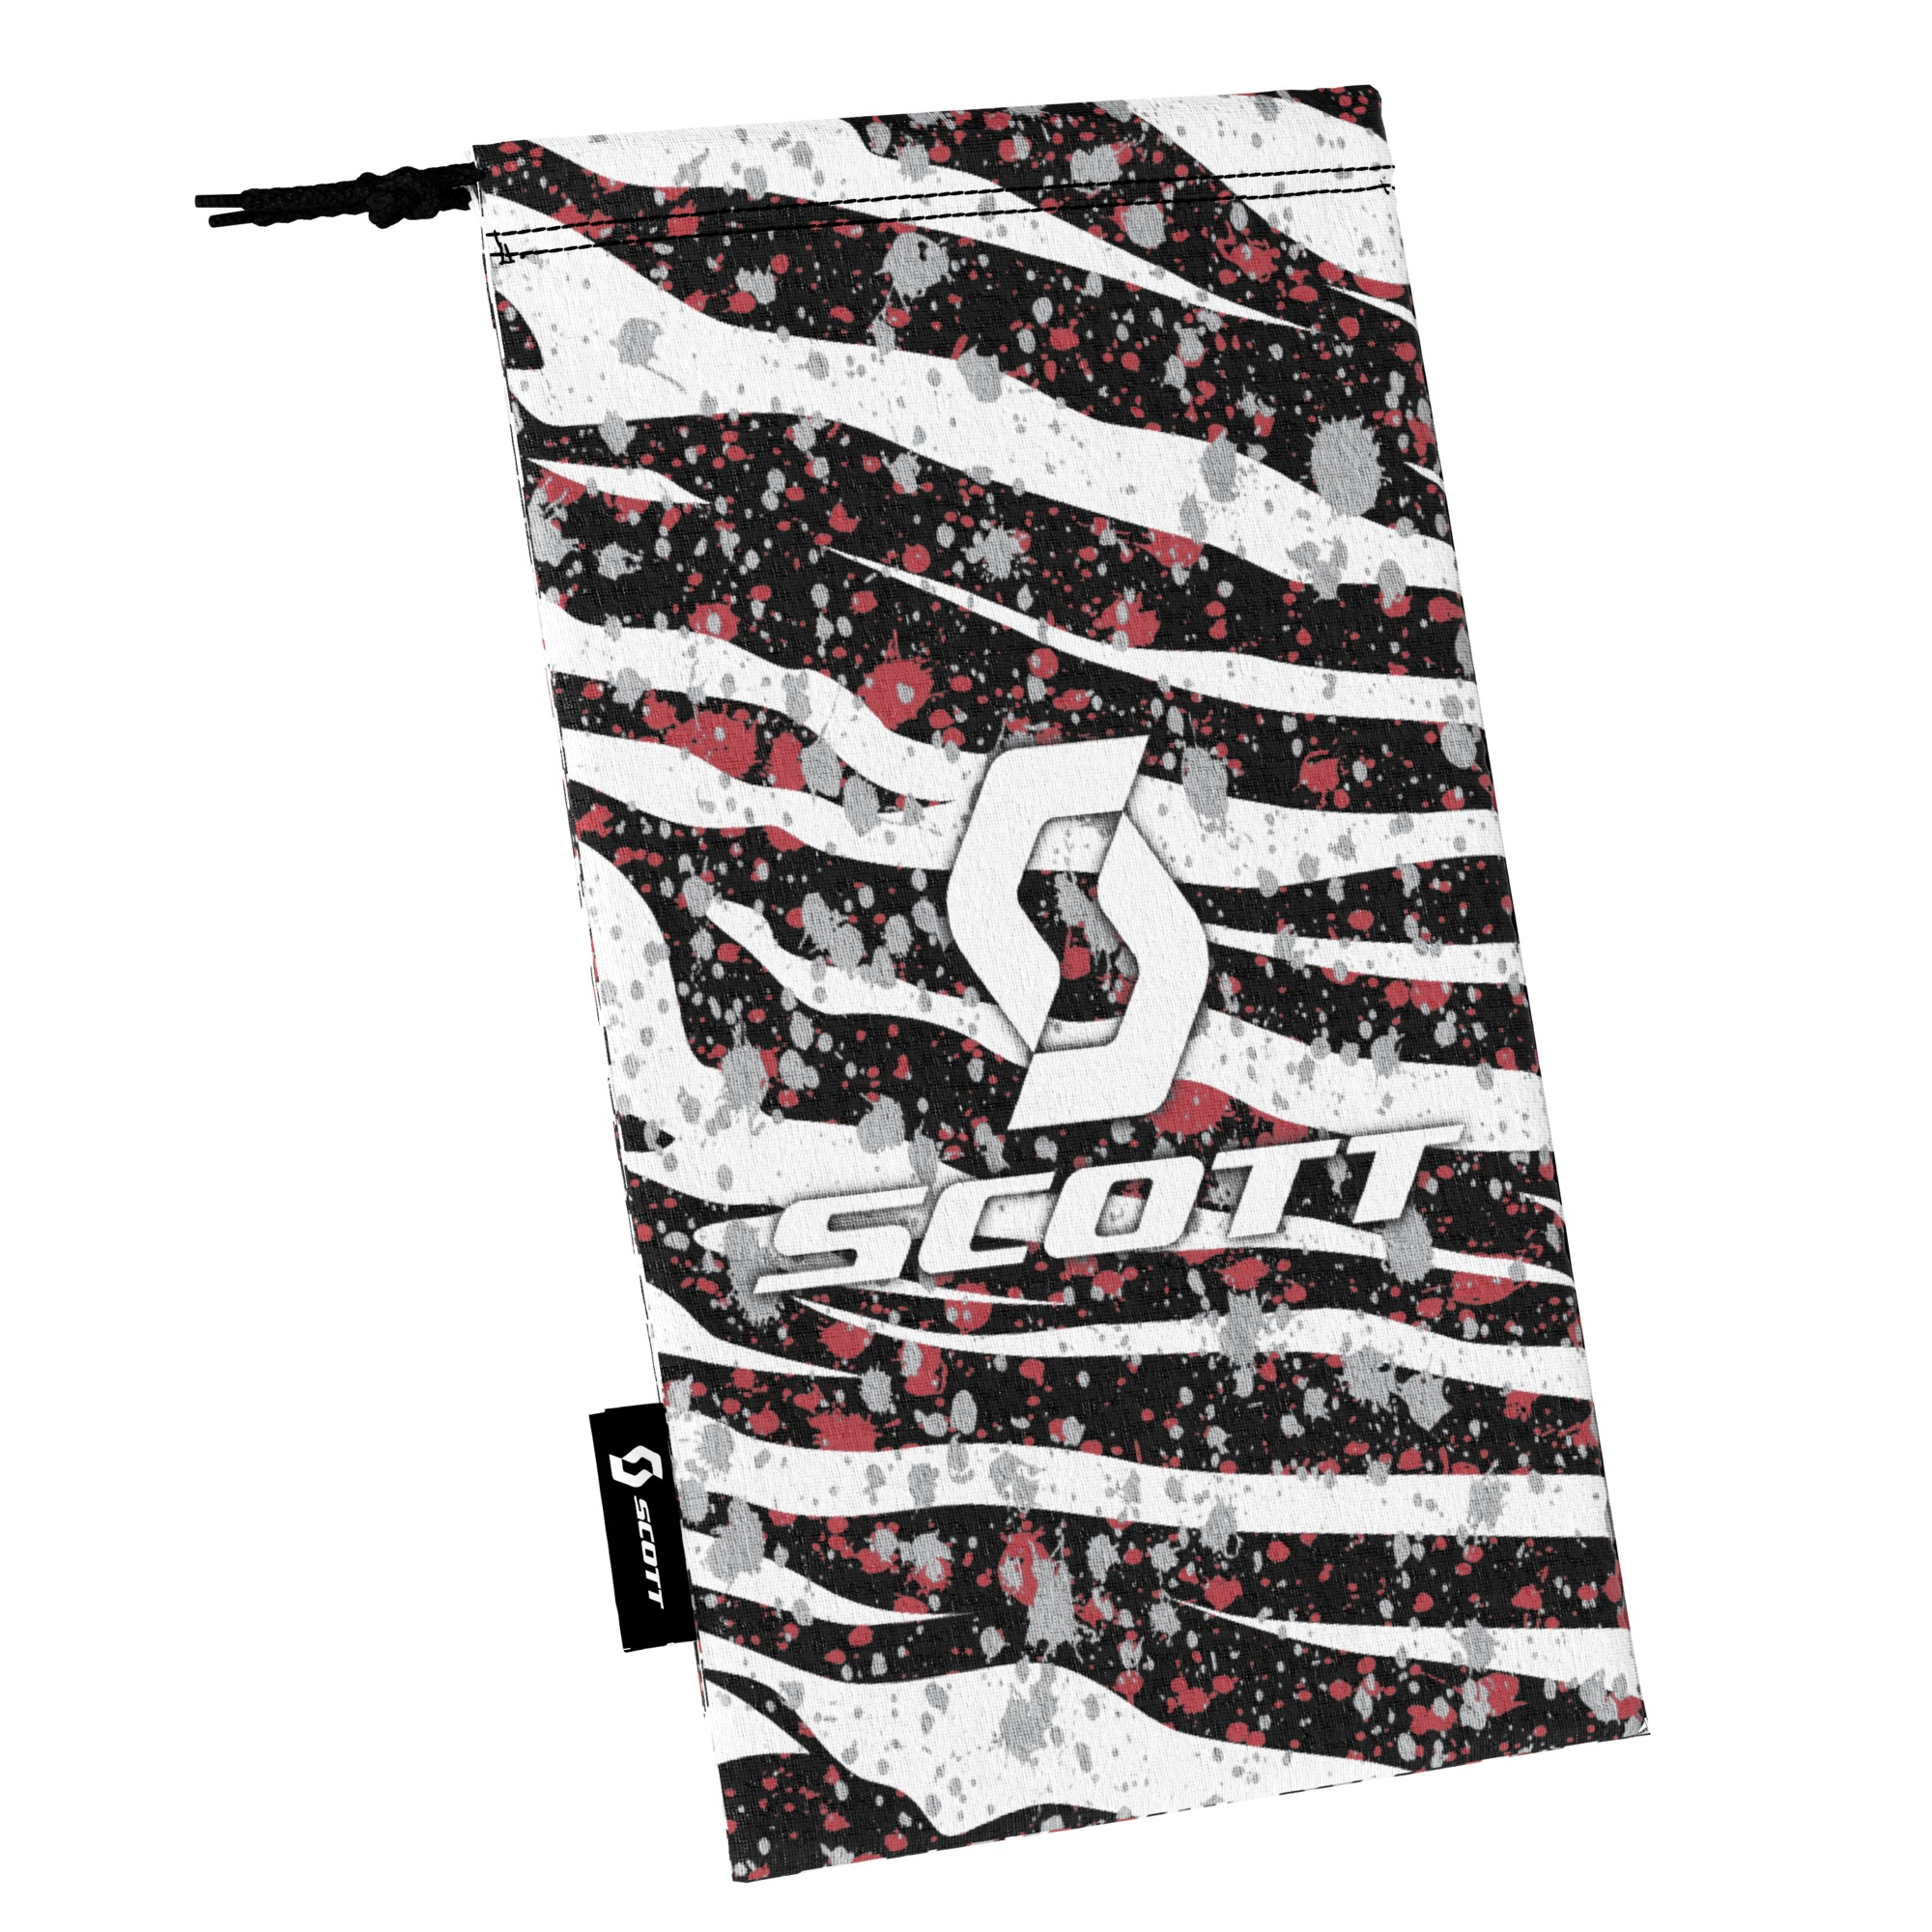 2786021018269 Scott Prospect Limited Edition Ethika Goggle Red White Black Motocross Enduro Masque Brille Bril